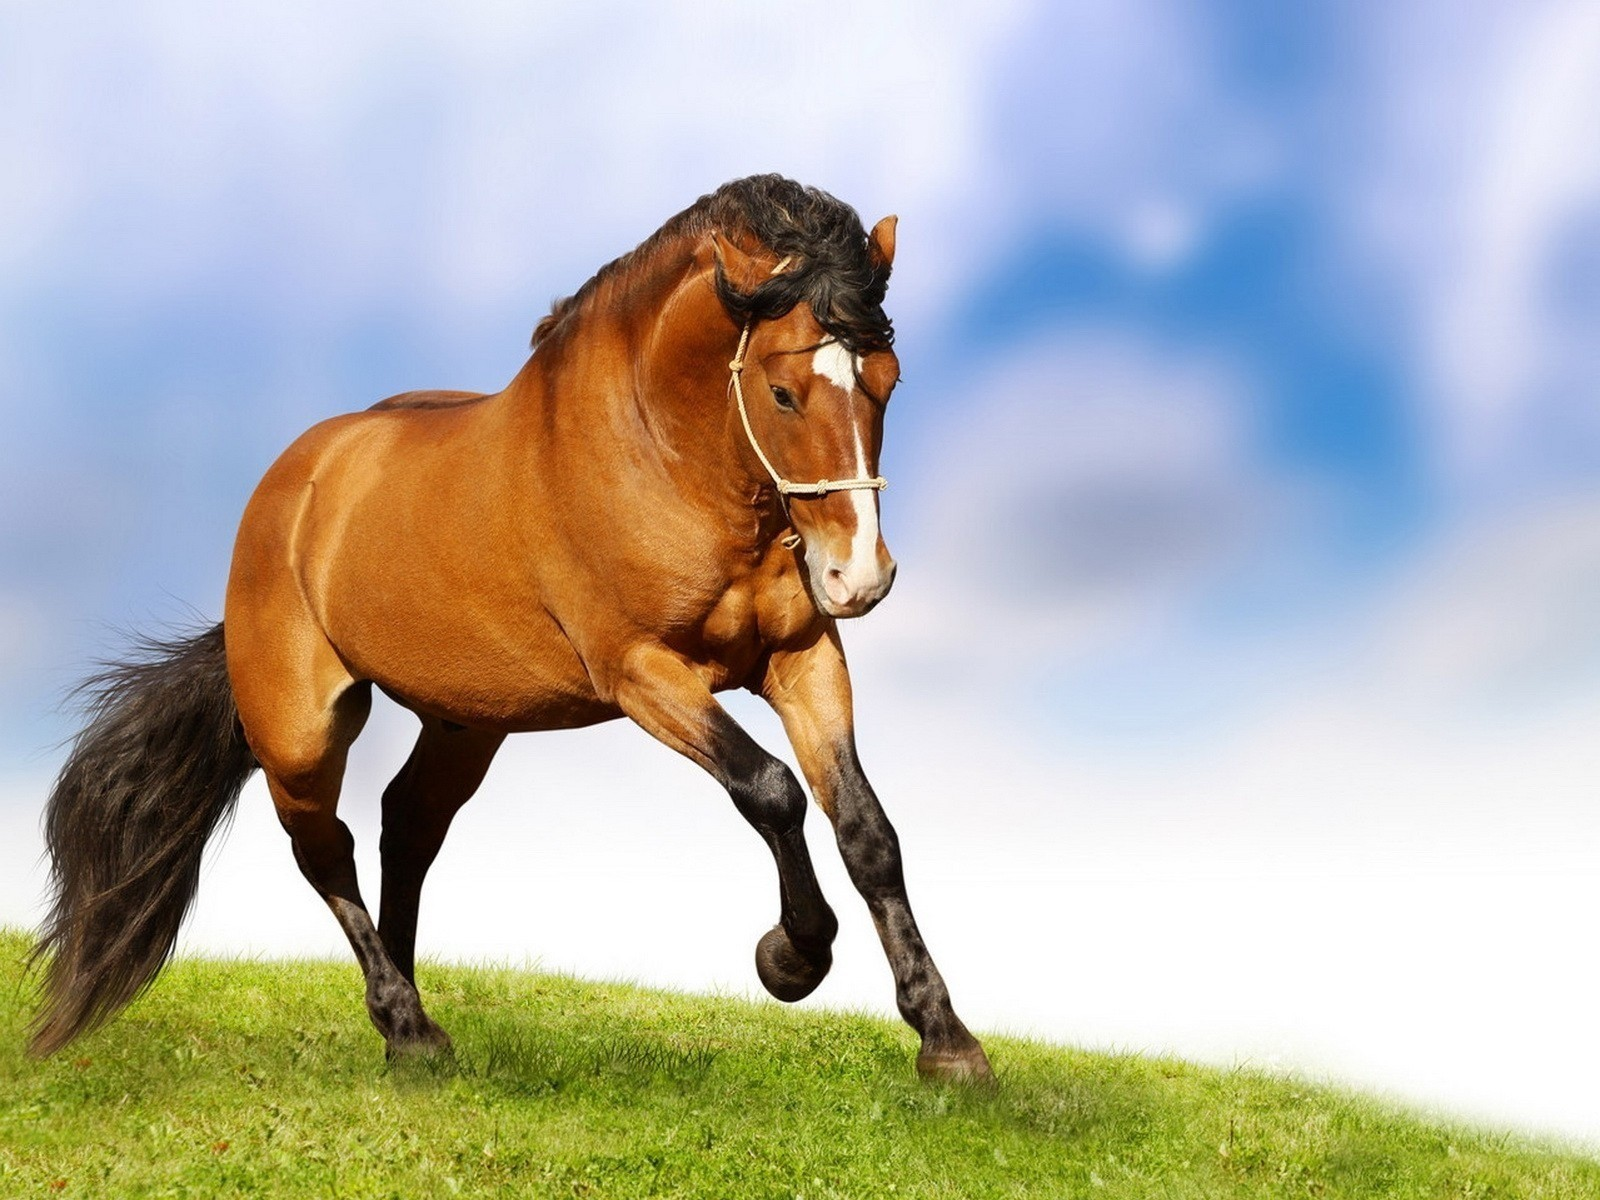 grass Horses running HD Wallpaper